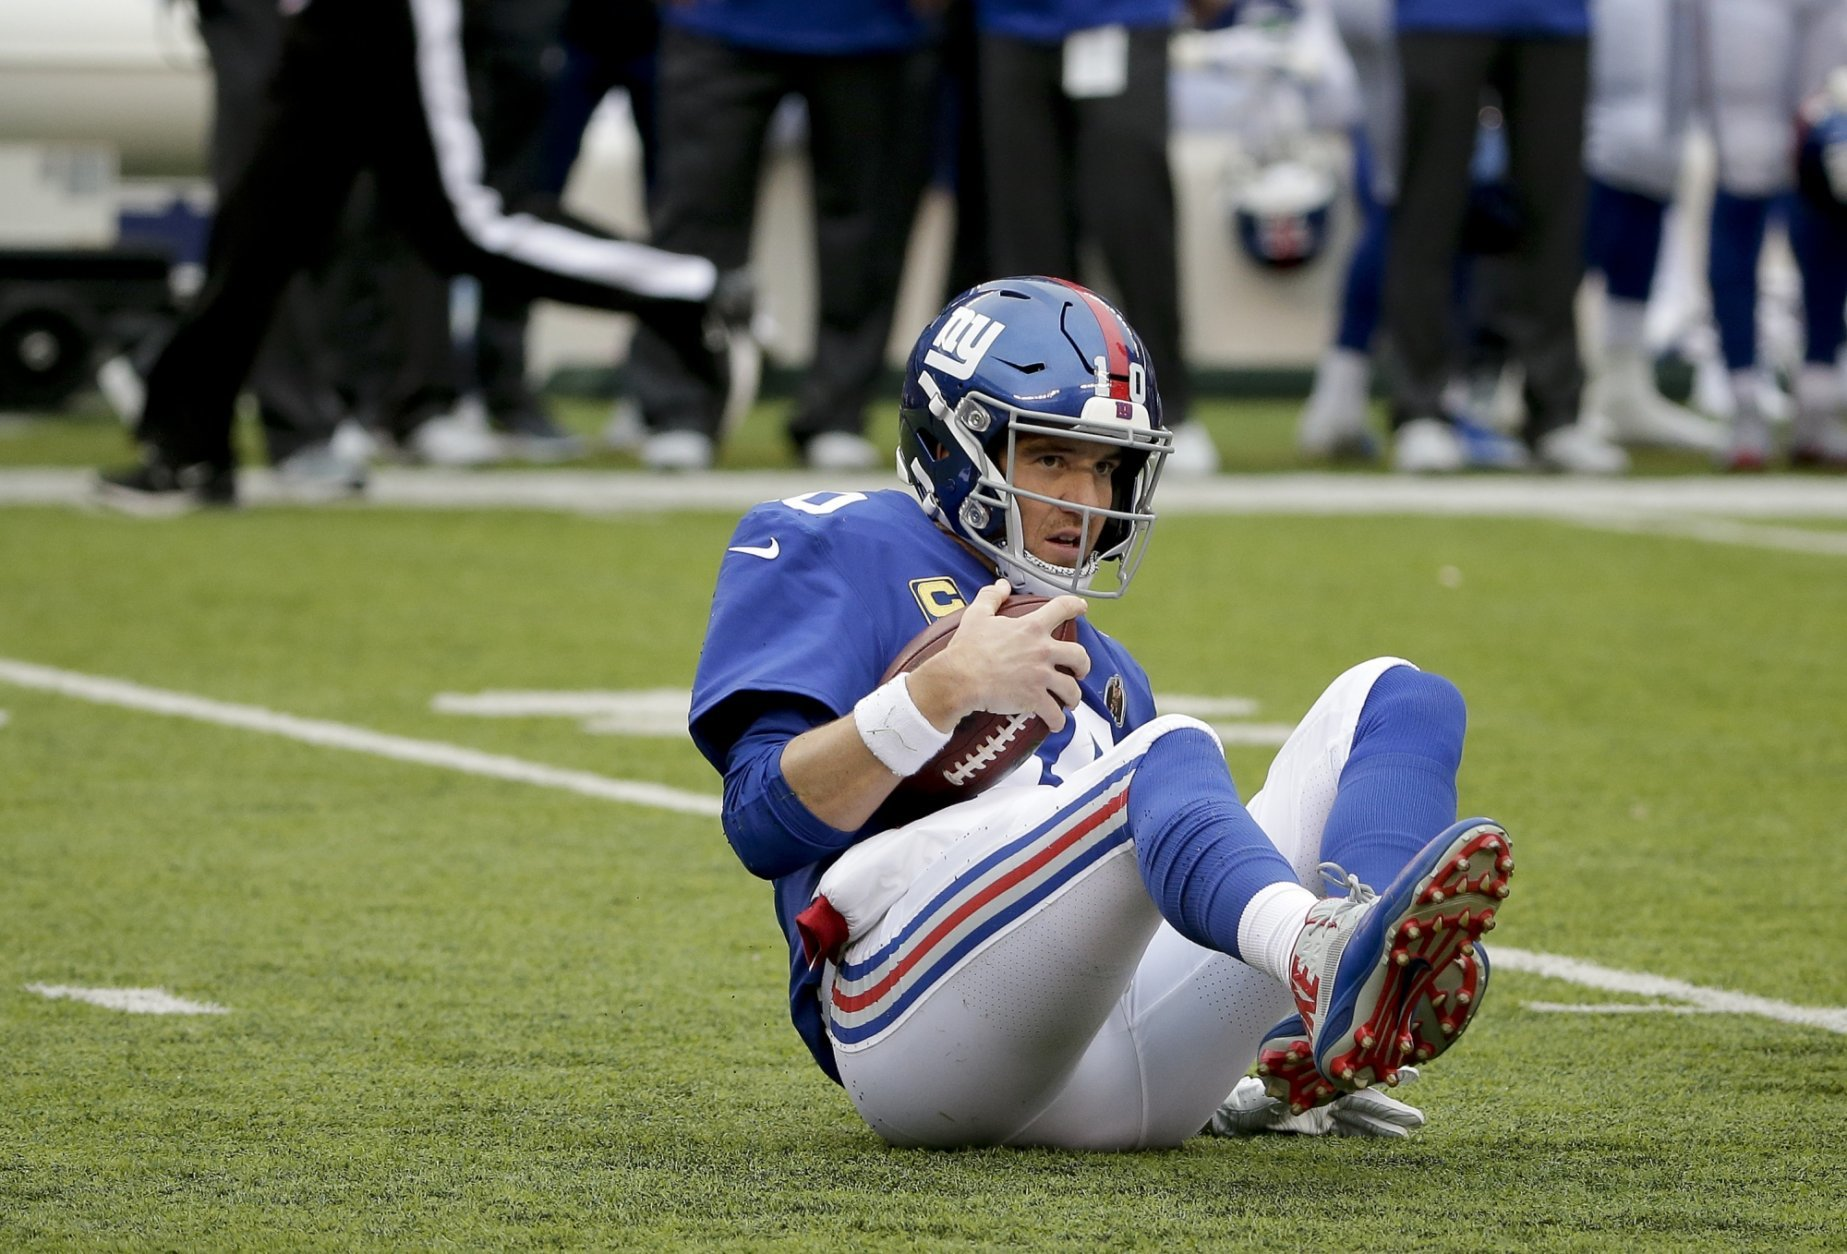 New York Giants quarterback Eli Manning (10) gets up off the turf after being sacked by the Washington Redskins during the second quarter of an NFL football game, Sunday, Oct. 28, 2018, in East Rutherford, N.J. (AP Photo/Seth Wenig)